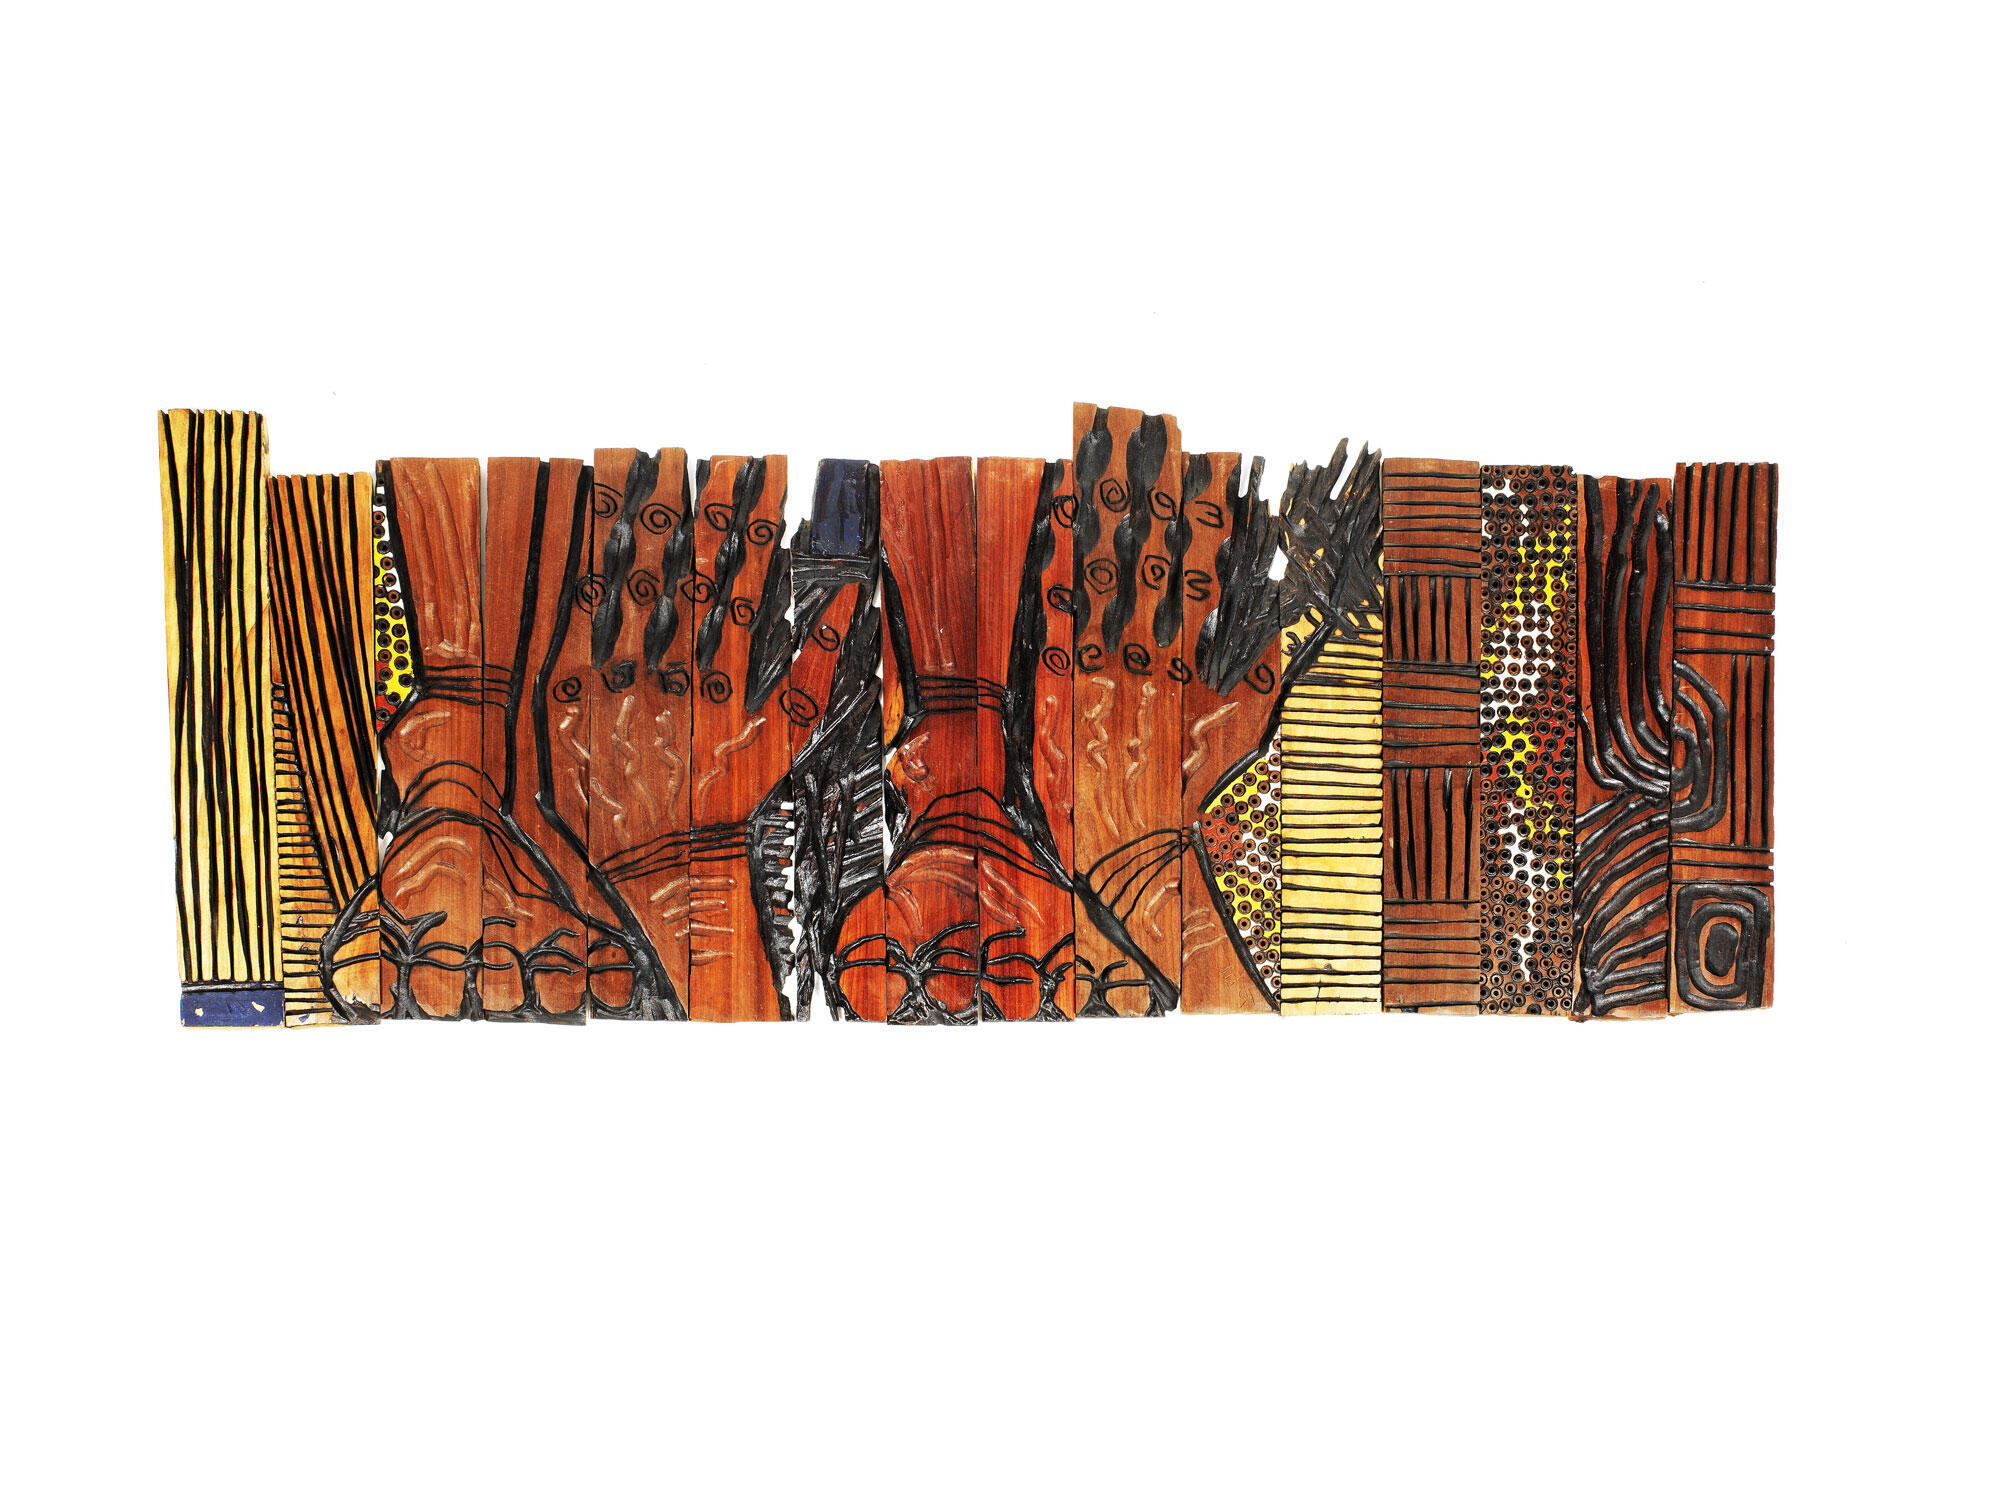 'Two Hands and Two Feet' by El Anatsui